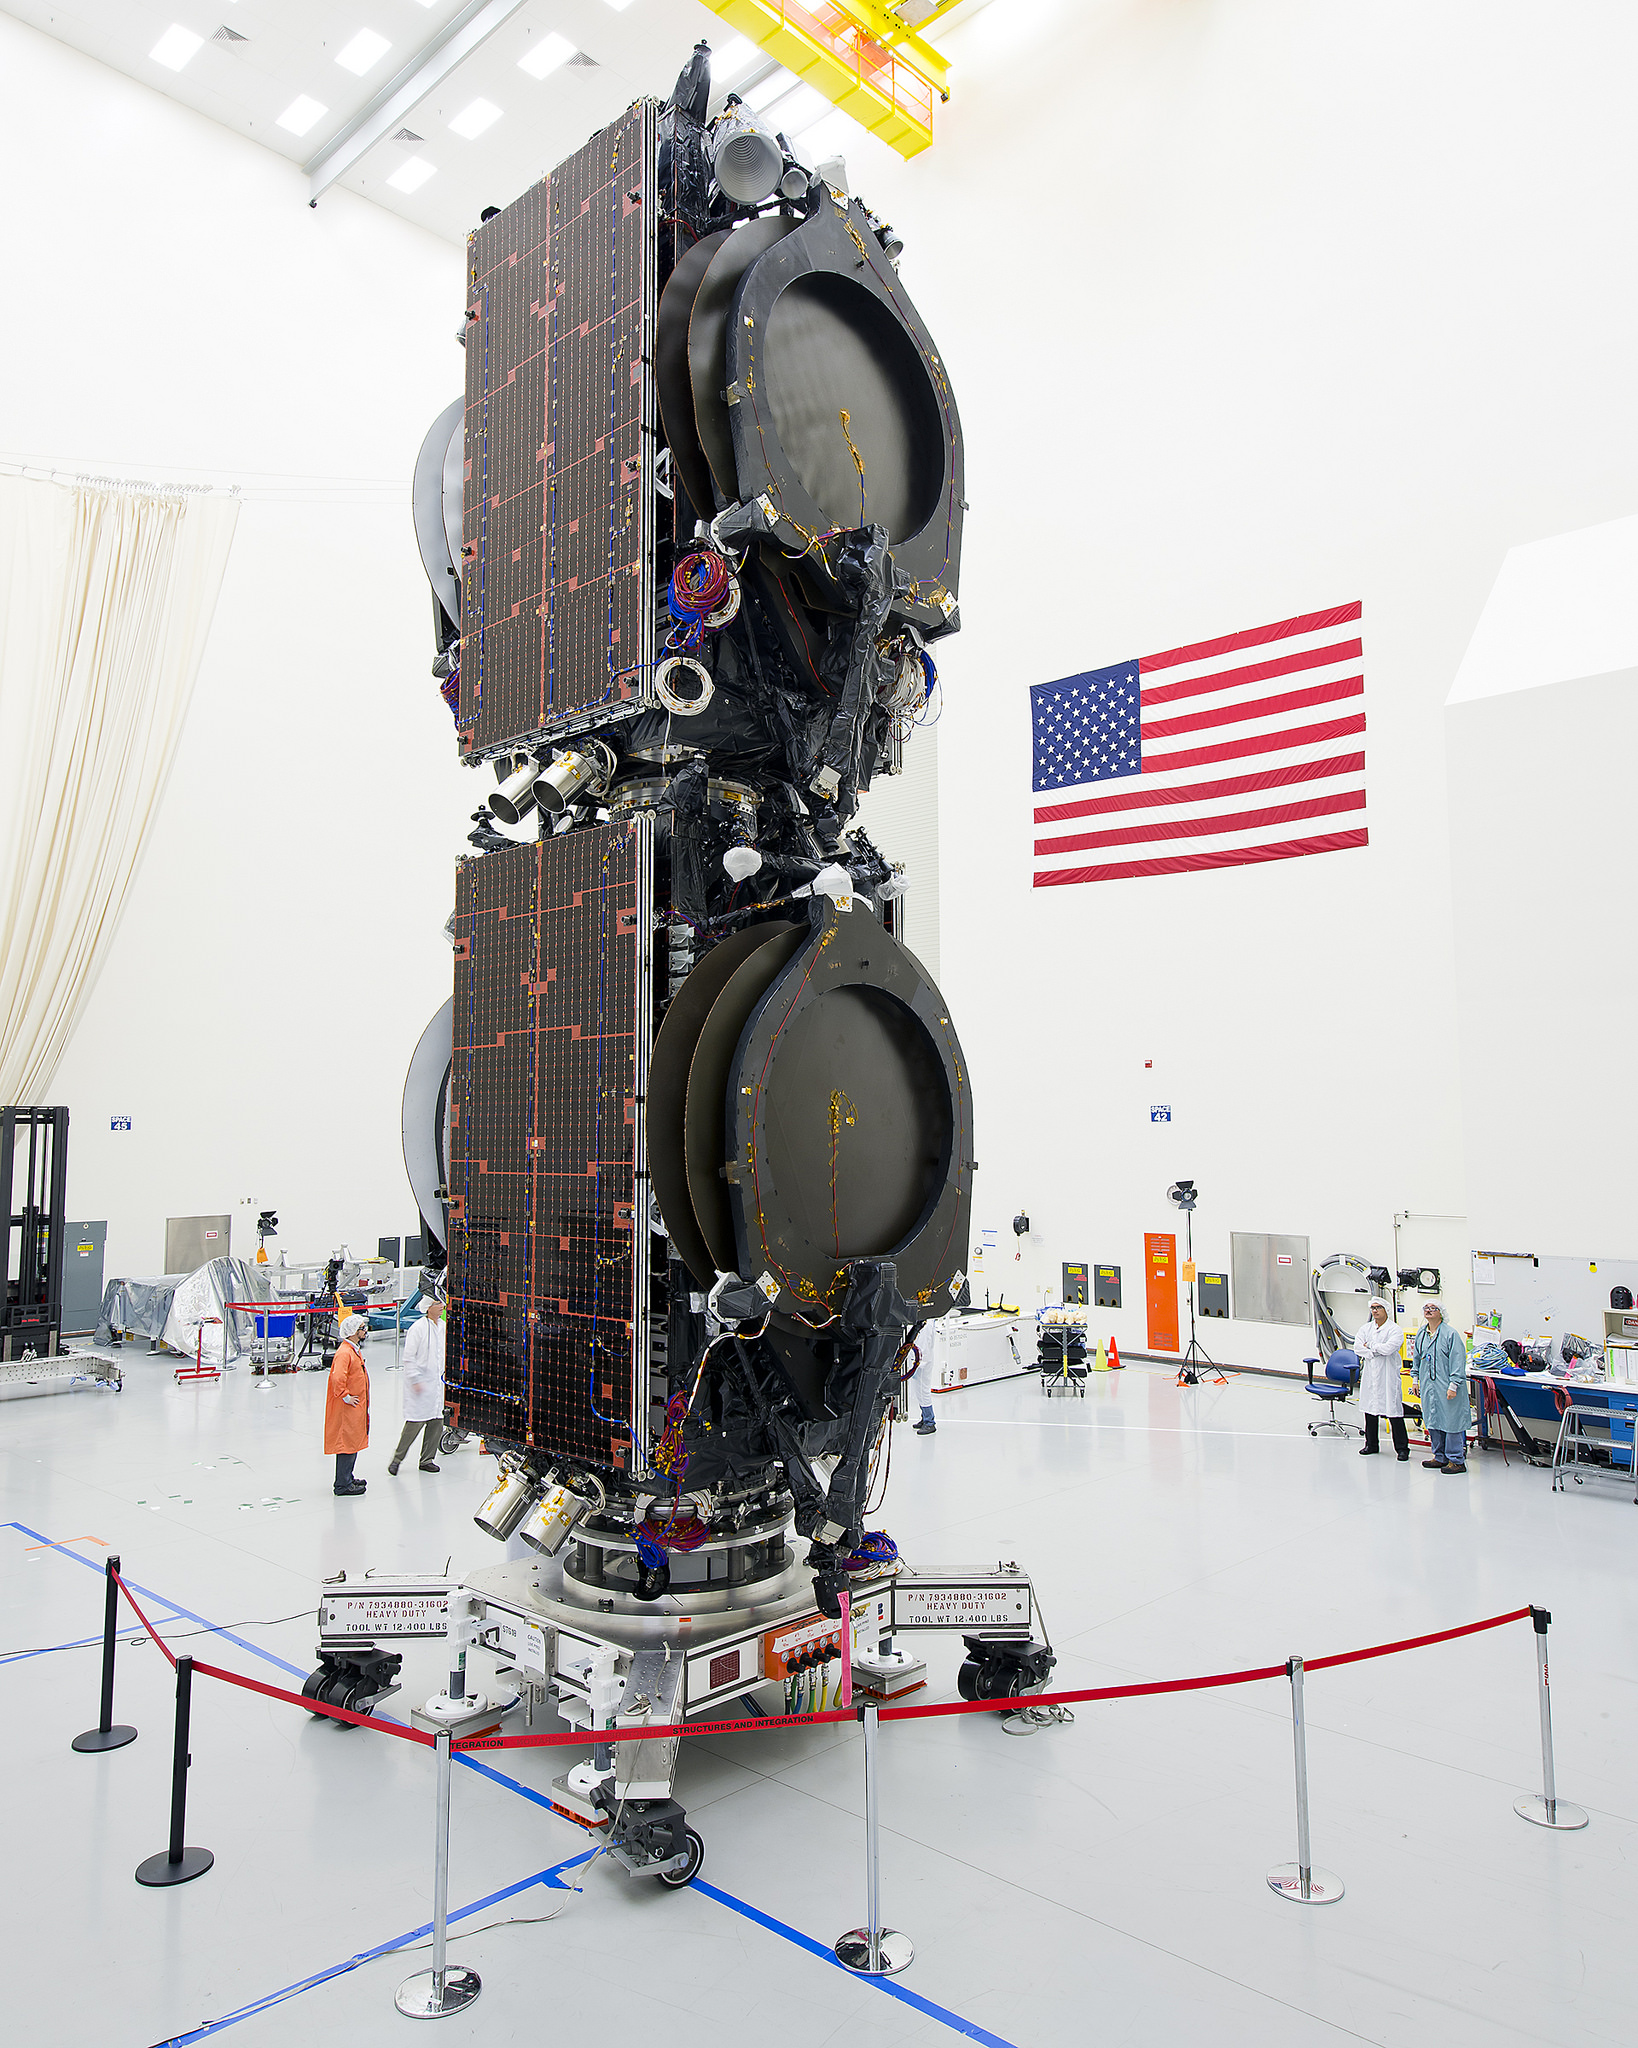 The ABS 3A satellite (top) and the Eutelsat 115 West B satellite (bottom) are stacked inside Boeing's factory in El Segundo, California. Credit: Boeing